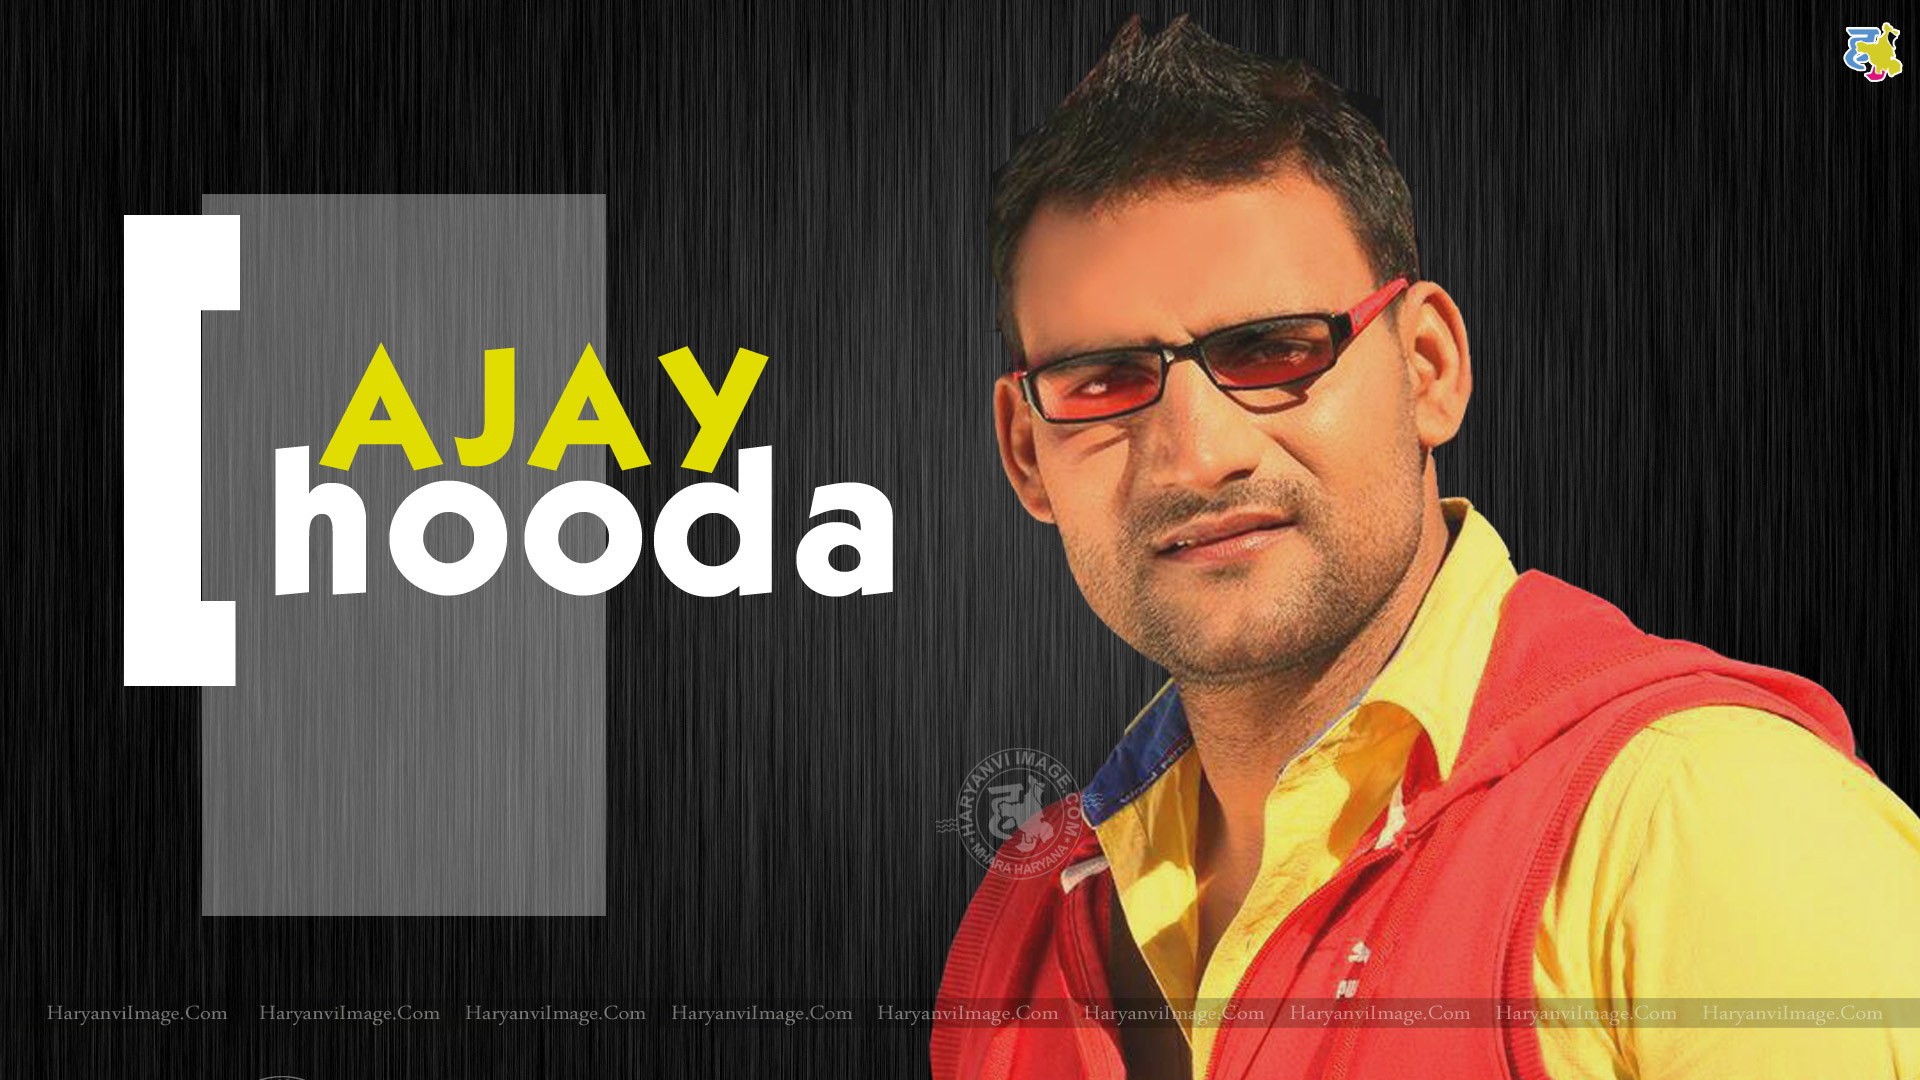 Haryanvi Writer Ajay Hooda HD Wallpaper